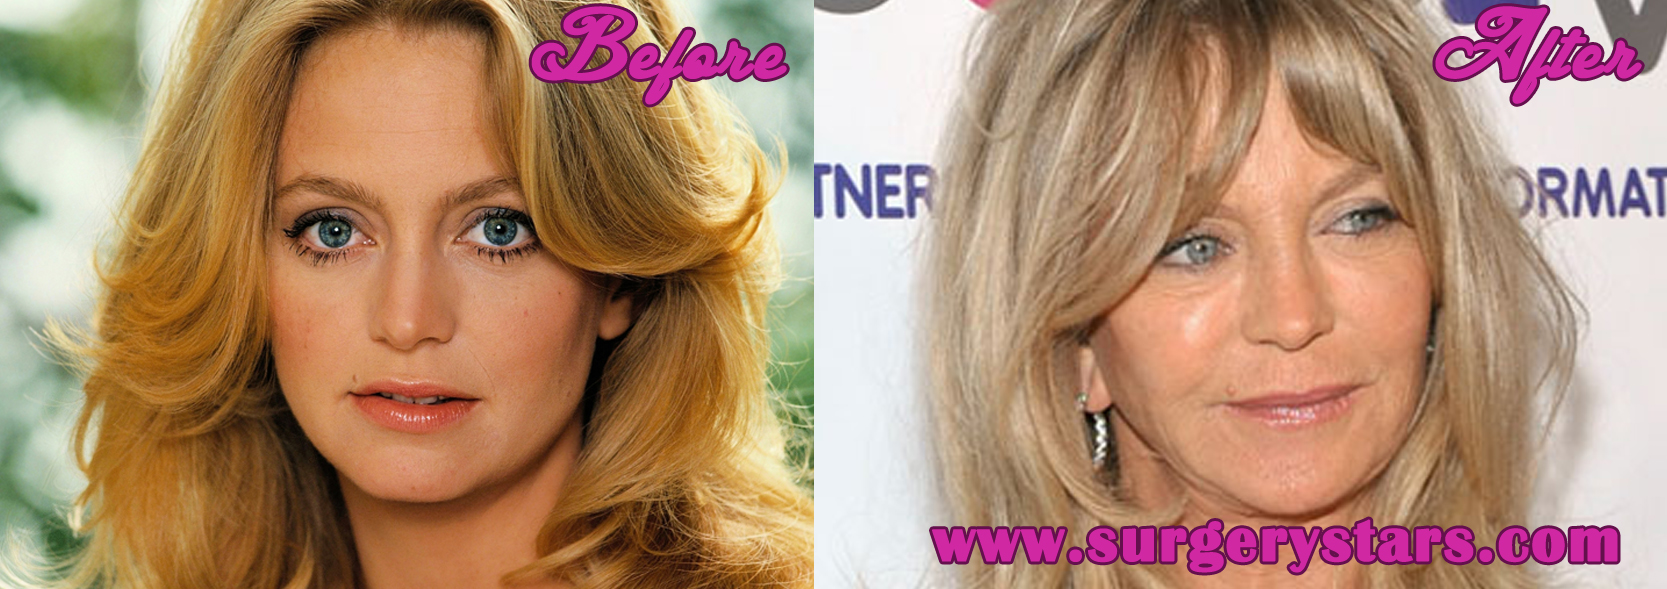 Goldie Hawn Plastic Surgery – Before and After Pictures